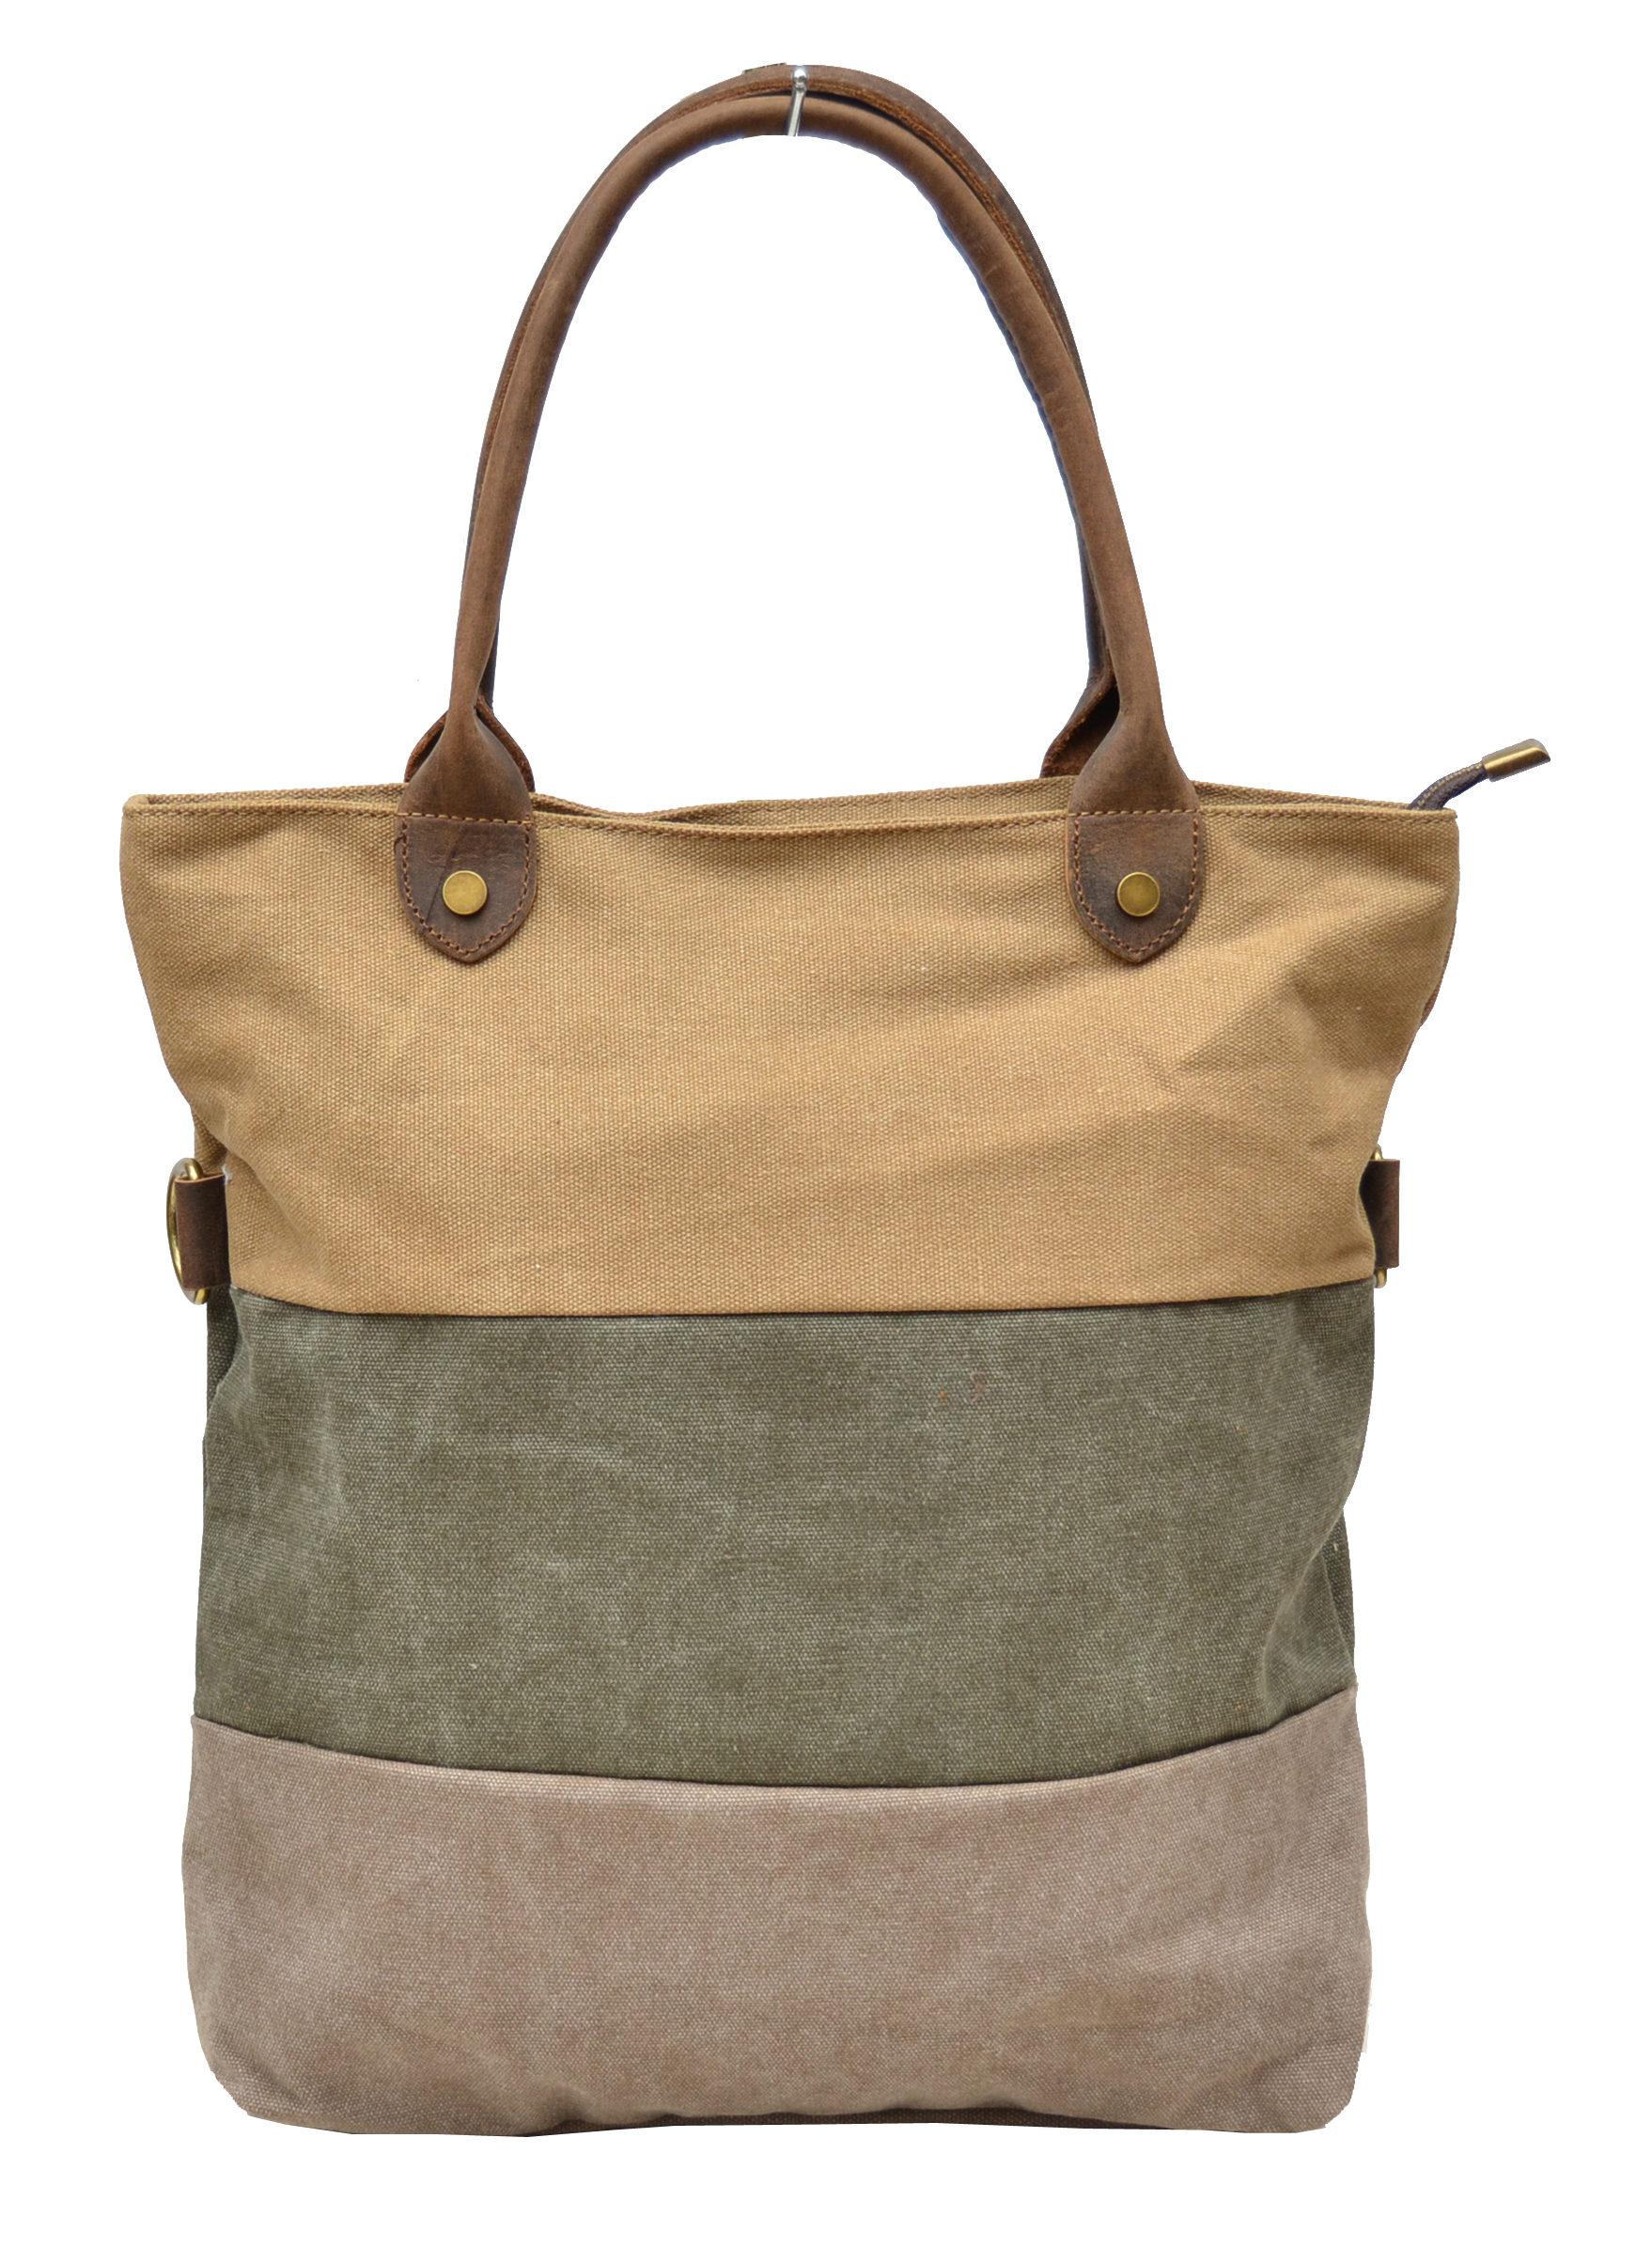 Cool Tote Bag For School Black Tote Canvas Bag Khaki Travel Tote For Women - E-CanvasBags